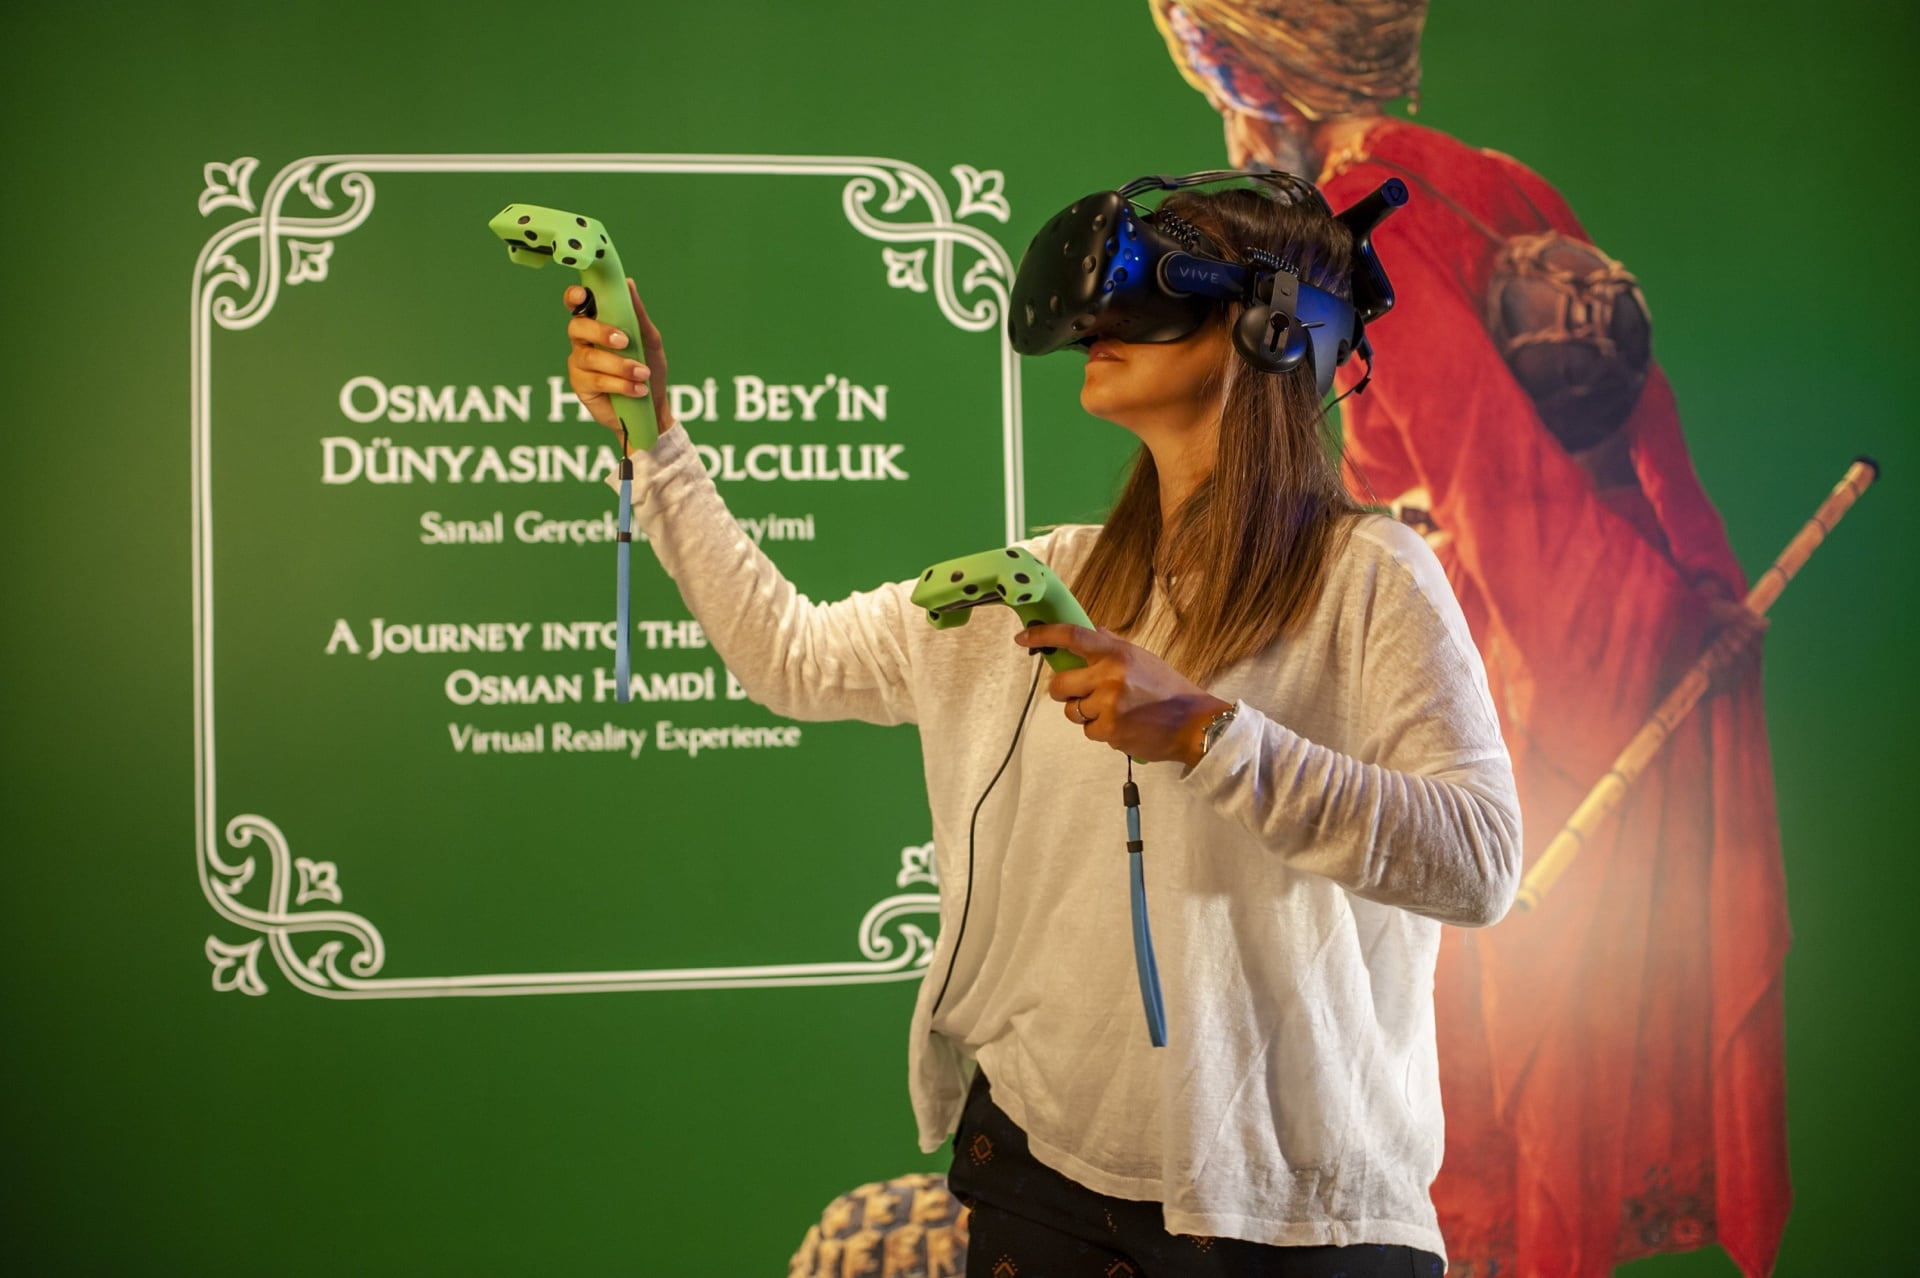 A Journey into the World of Osman Hamdi Bey<br>Virtual Reality Experience gallery 5